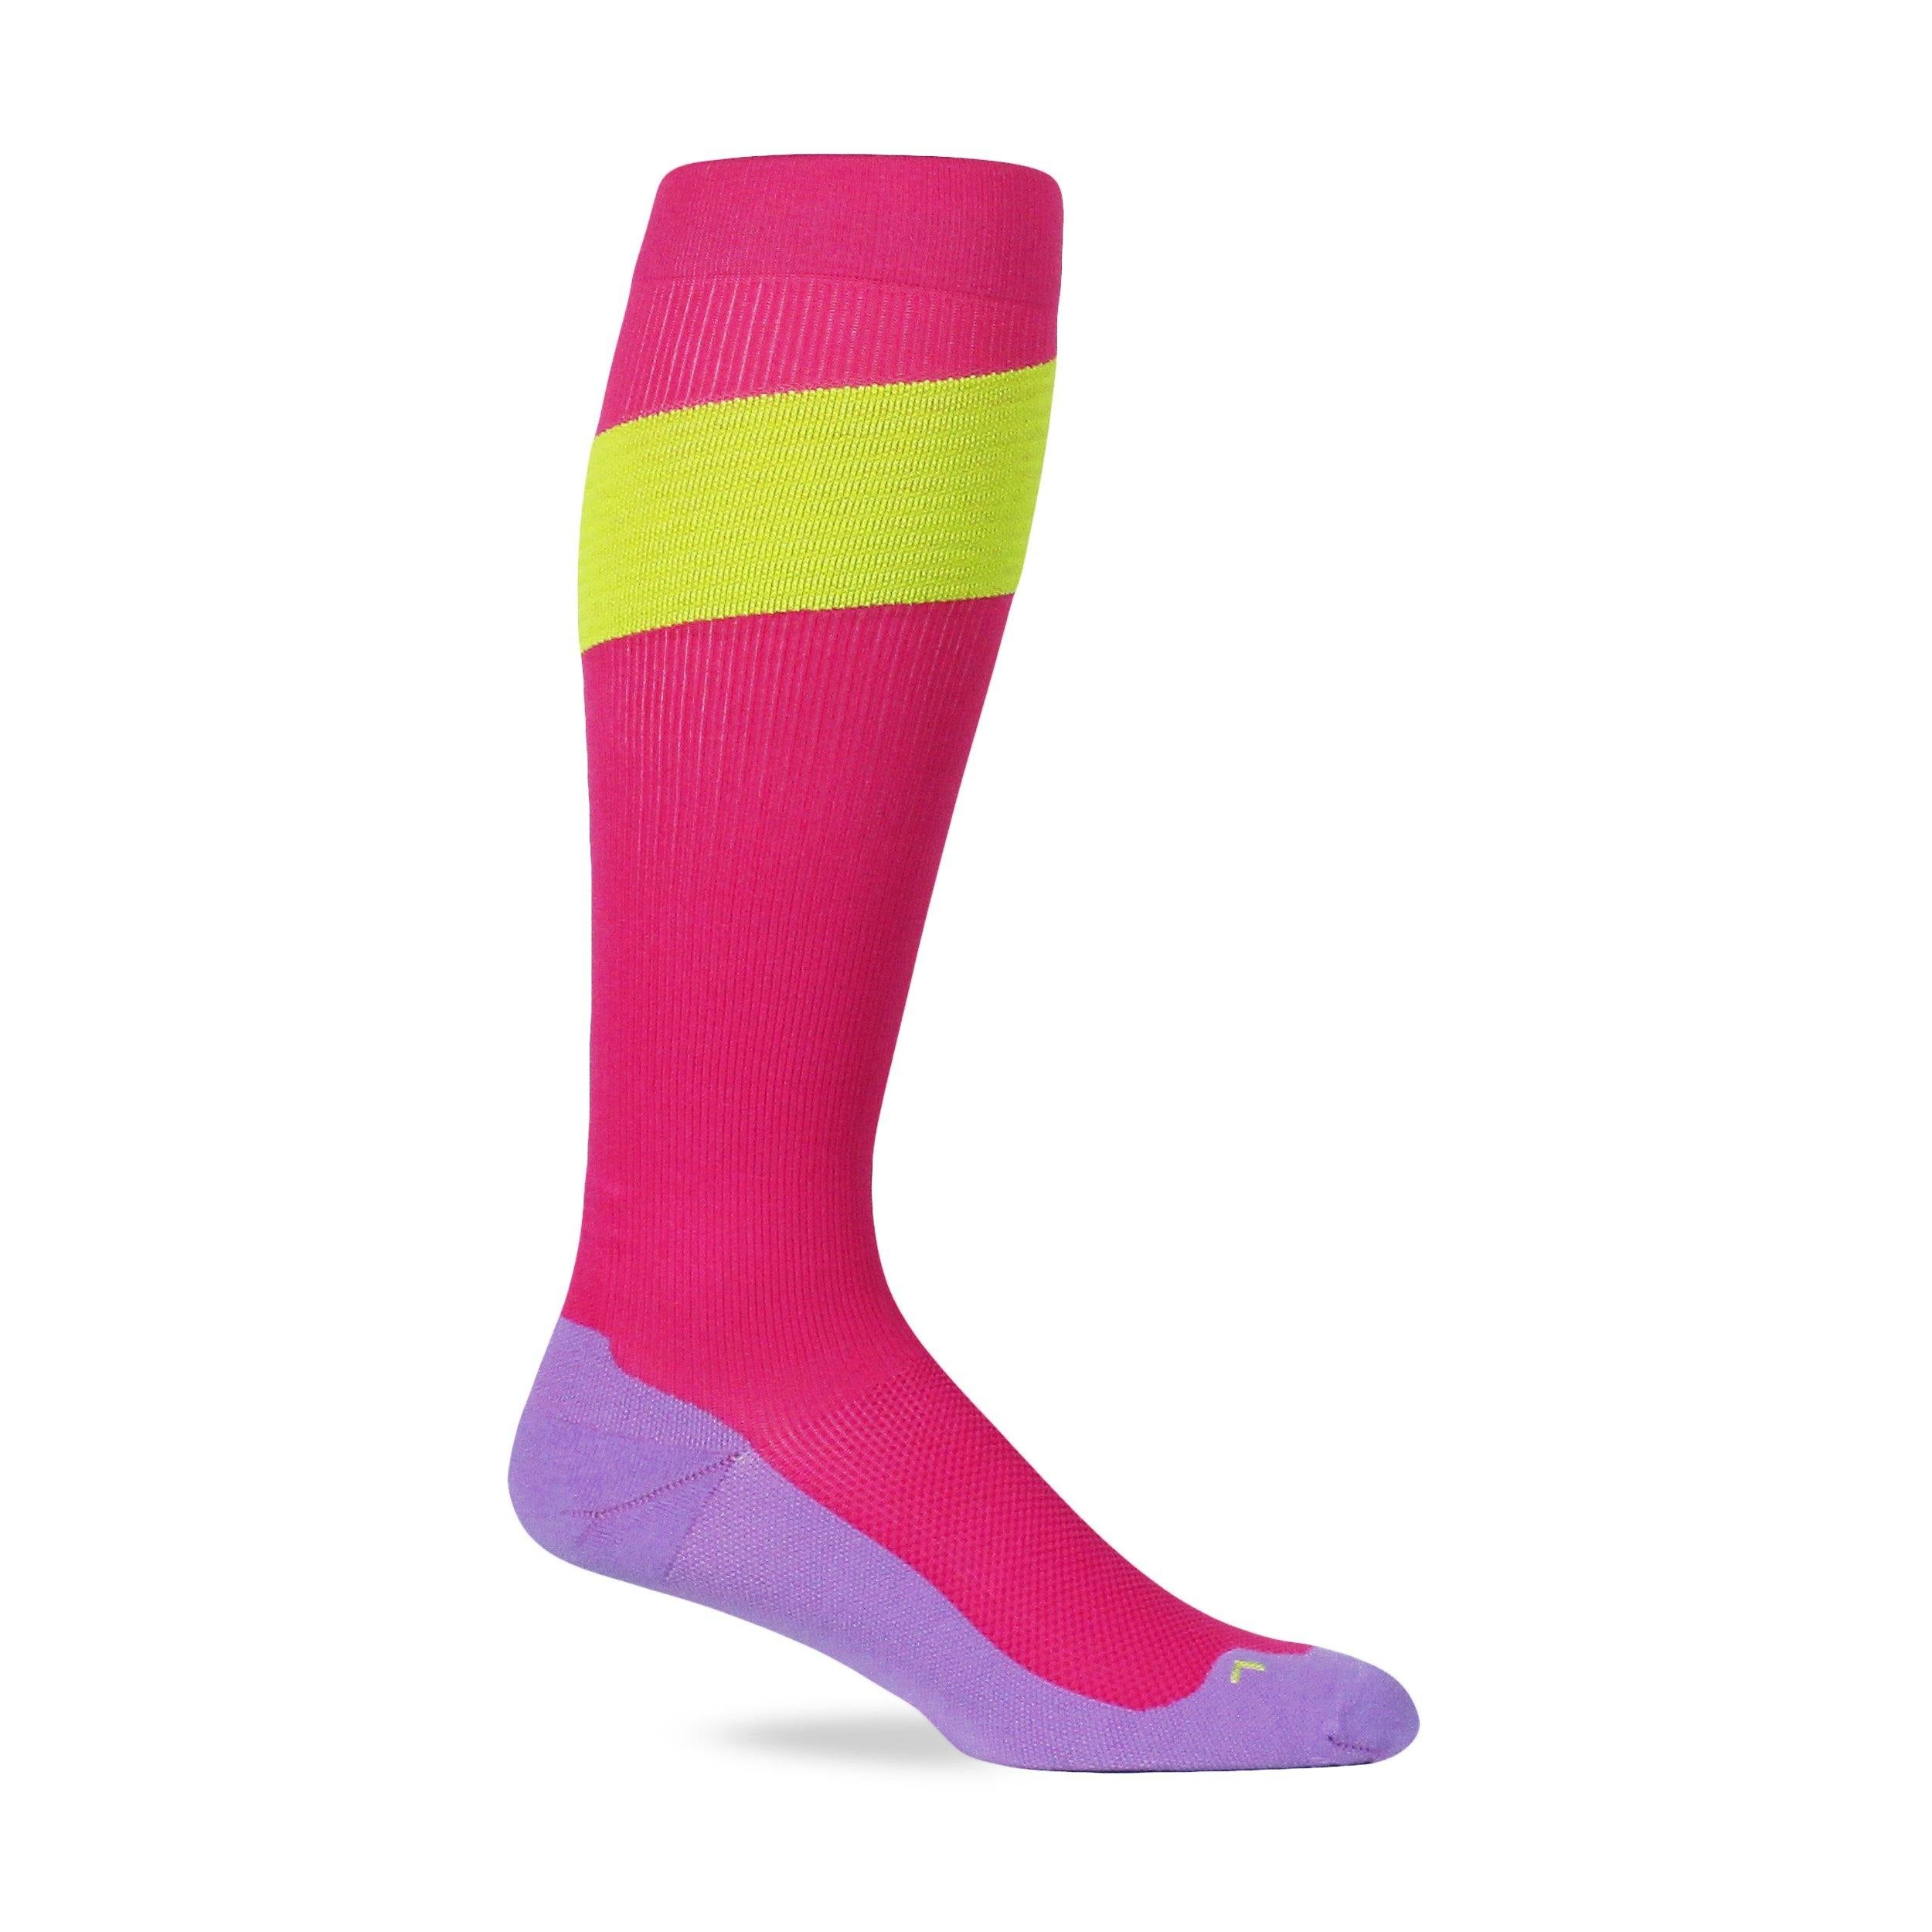 Tiux Performance Compression Socks - Pink/Neon Yellow/Lavender